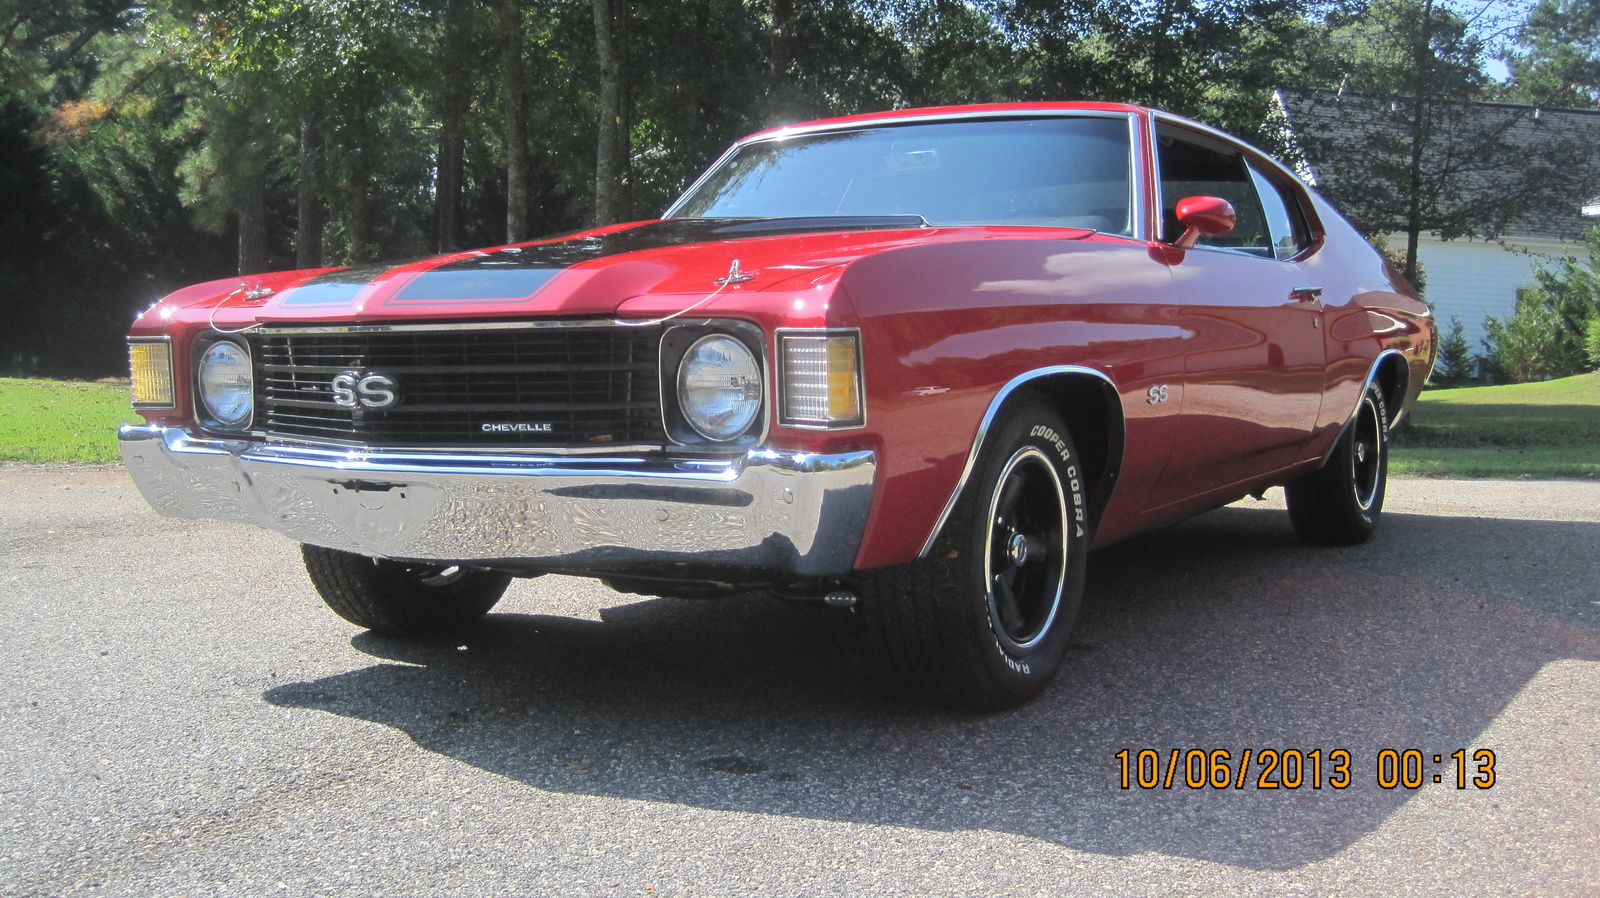 cars 1972 chevrolet chevelle - photo #43